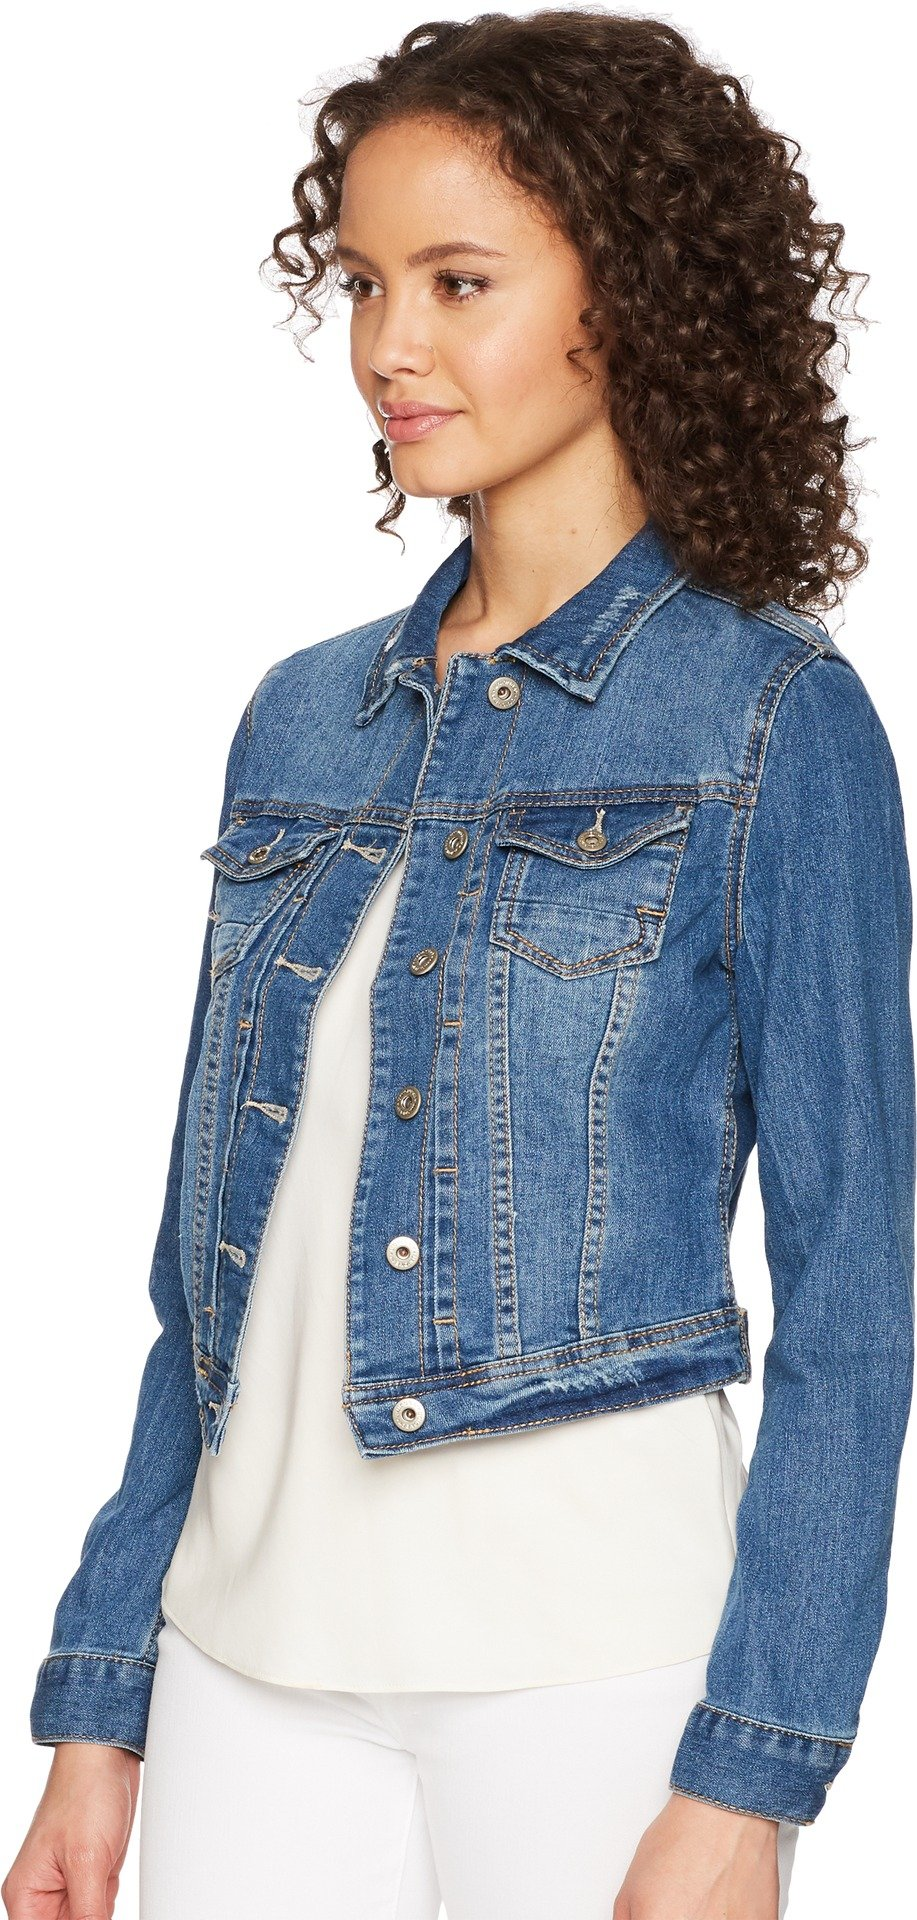 UNIONBAY Women's Lucas Denim Jacket, Cove, Medium by UNIONBAY (Image #2)